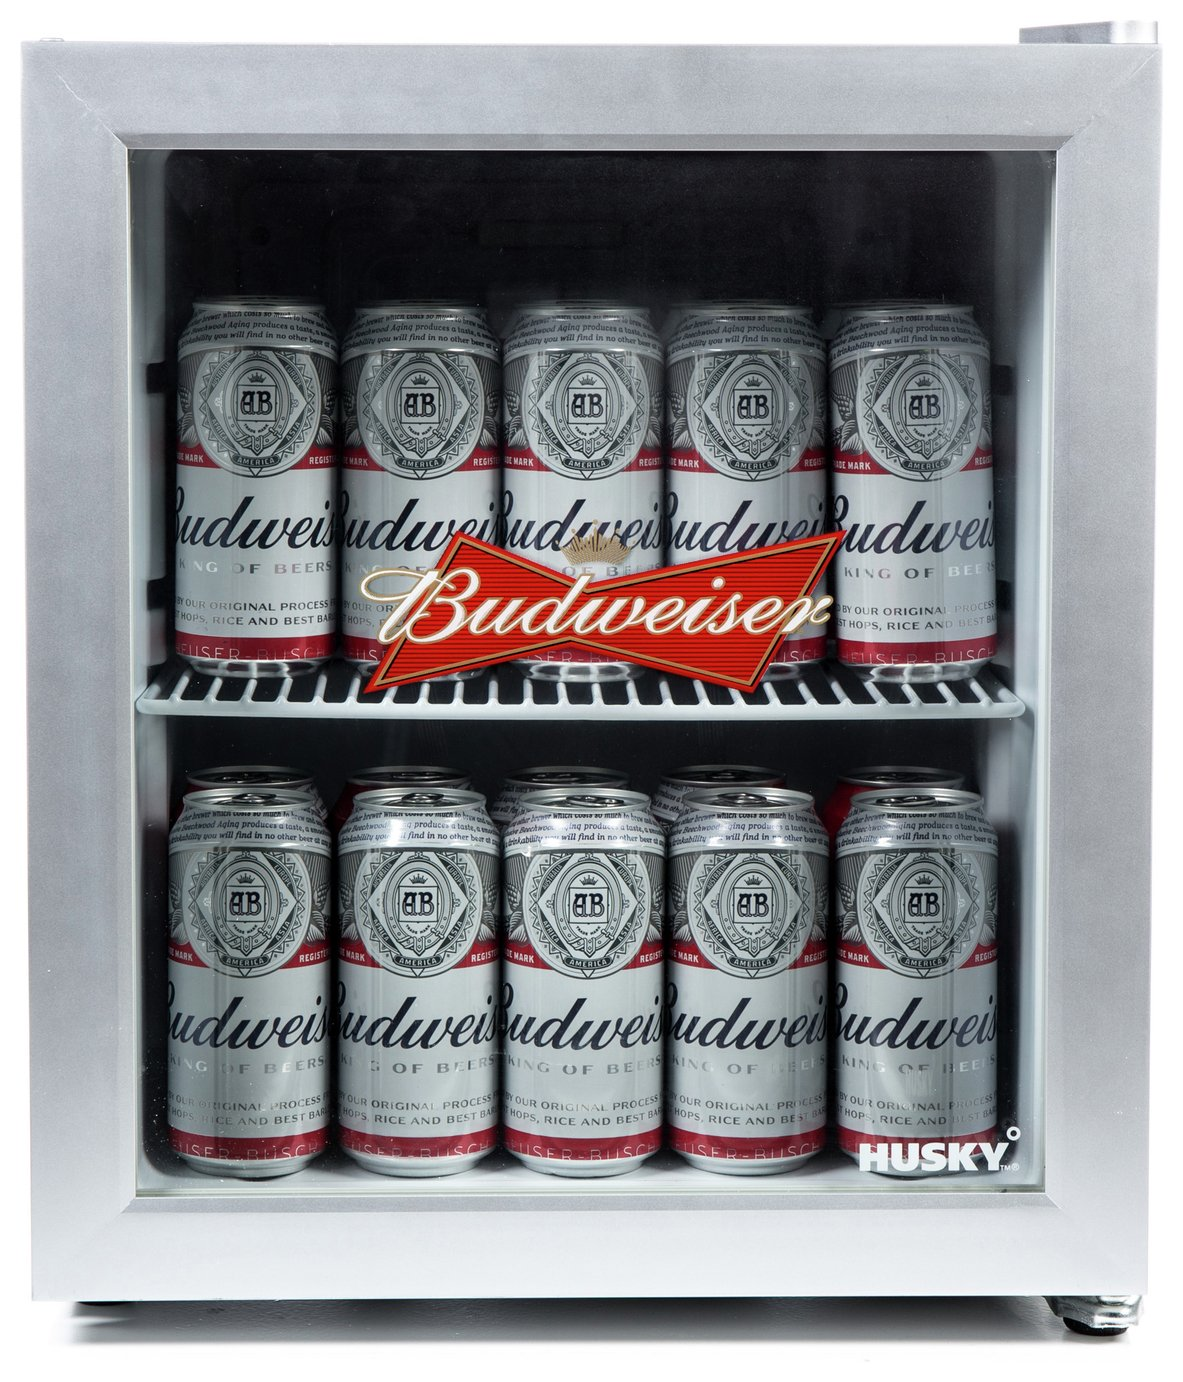 Sale On Husky Budweiser 46 Litre Drinks Cooler Husky